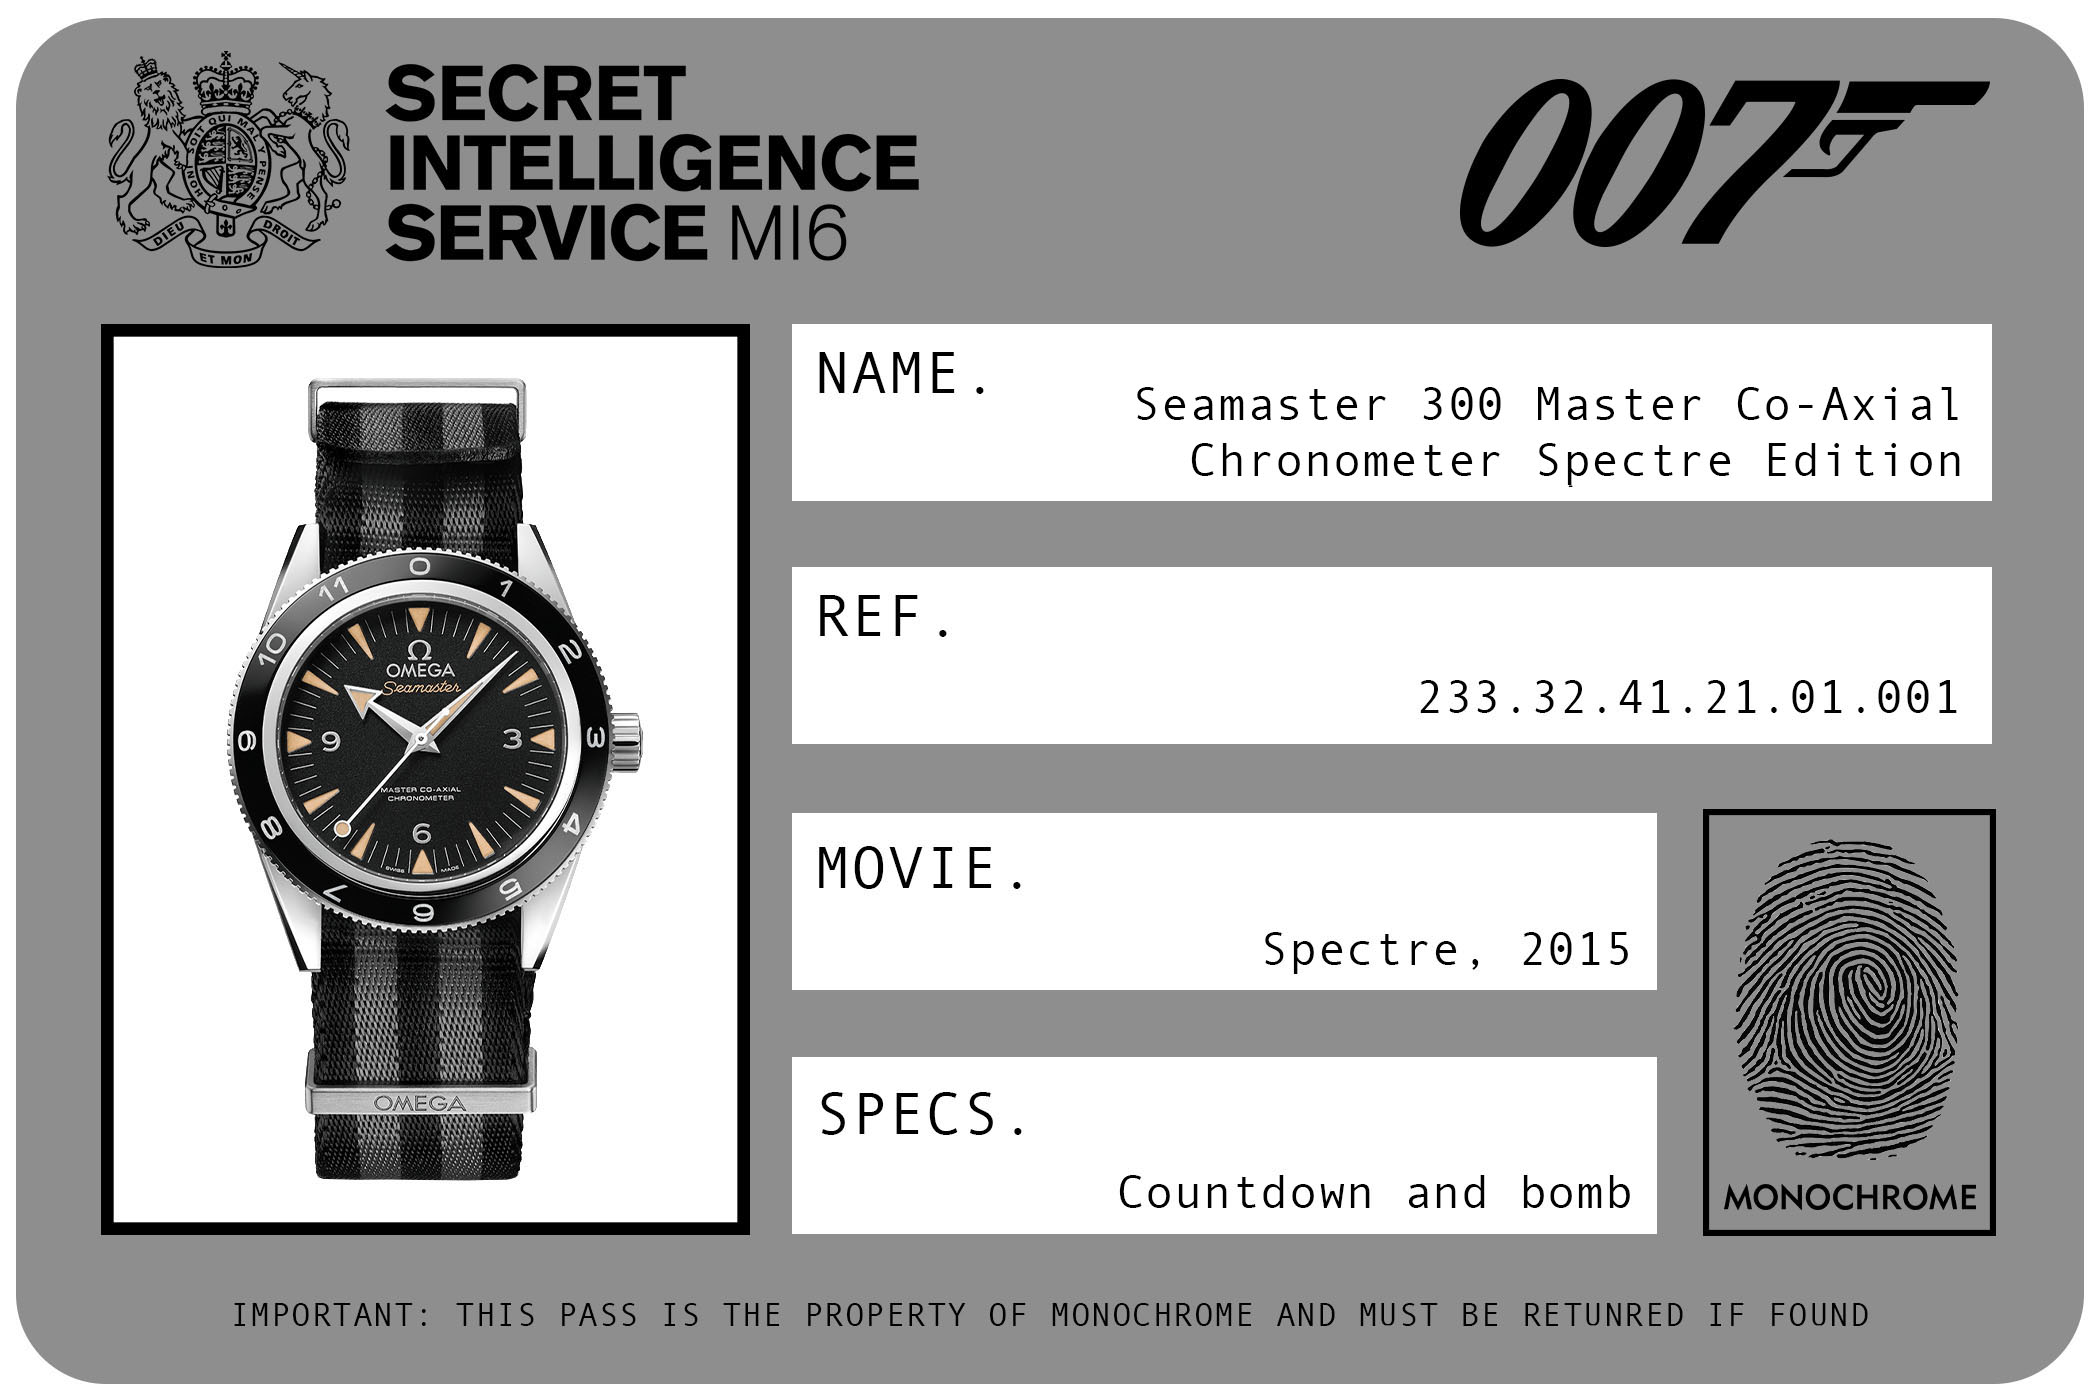 2015 - Omega Seamaster 300 Master Co-Axial Chronometer Spectre Edition 233.32.41.21.01.001 James Bond Spectre ID Card